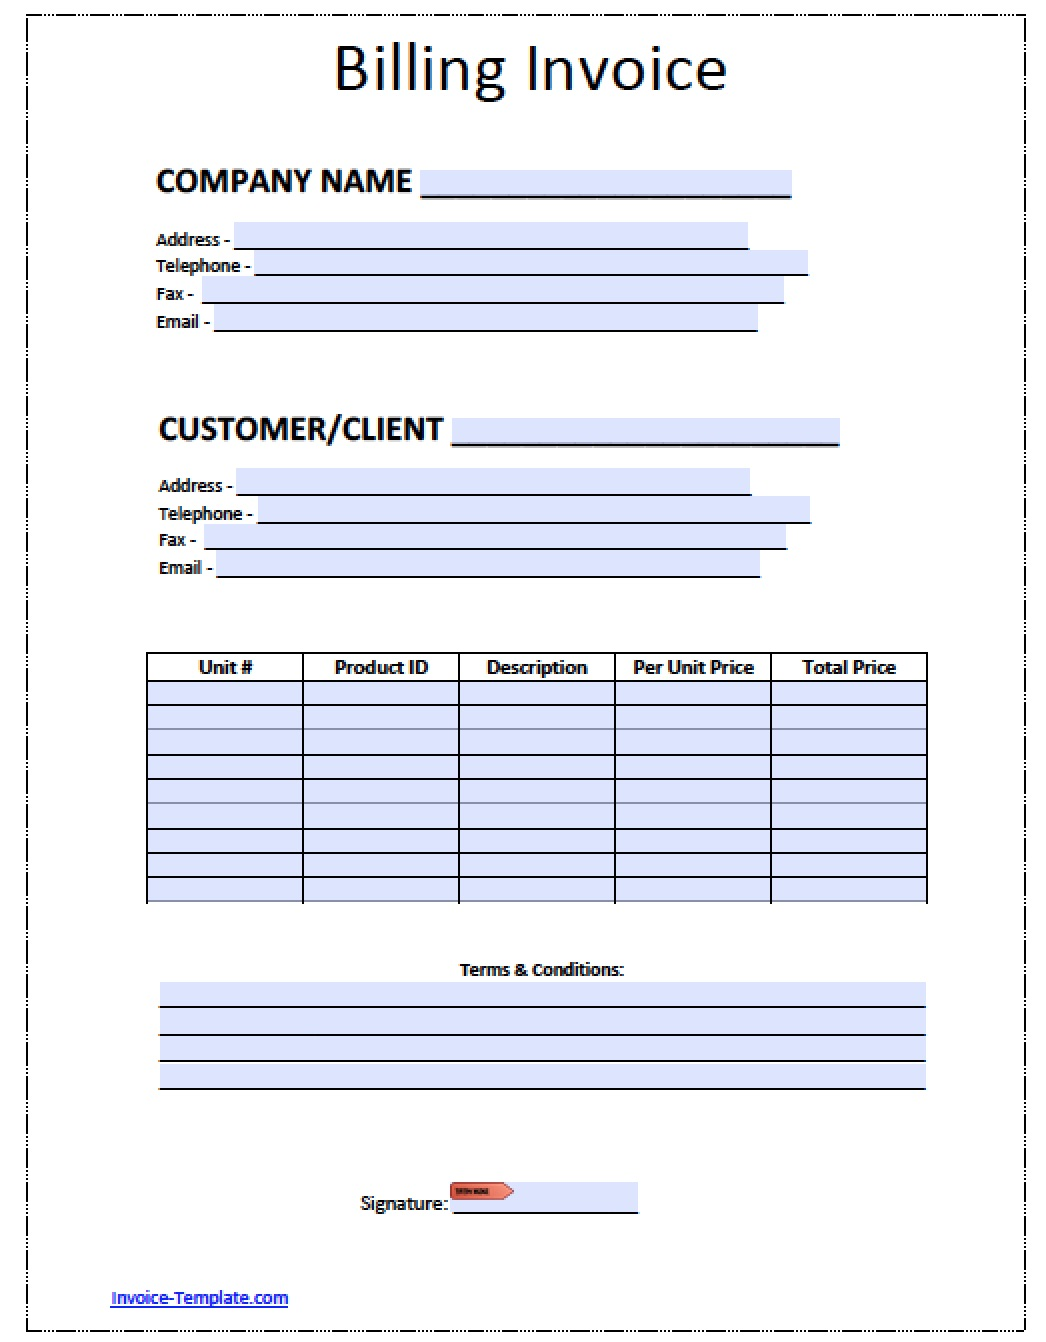 Amatospizzaus  Prepossessing Free Billing Invoice Template  Excel  Pdf  Word Doc With Exciting Billinginvoicetemplatewordpdf With Cool Free Uk Invoice Template Also Free Small Business Invoice Software In Addition Us Invoice Template And Send Free Invoice As Well As Ubl Invoice Additionally Pdf Invoice Creator From Invoicetemplatecom With Amatospizzaus  Exciting Free Billing Invoice Template  Excel  Pdf  Word Doc With Cool Billinginvoicetemplatewordpdf And Prepossessing Free Uk Invoice Template Also Free Small Business Invoice Software In Addition Us Invoice Template From Invoicetemplatecom